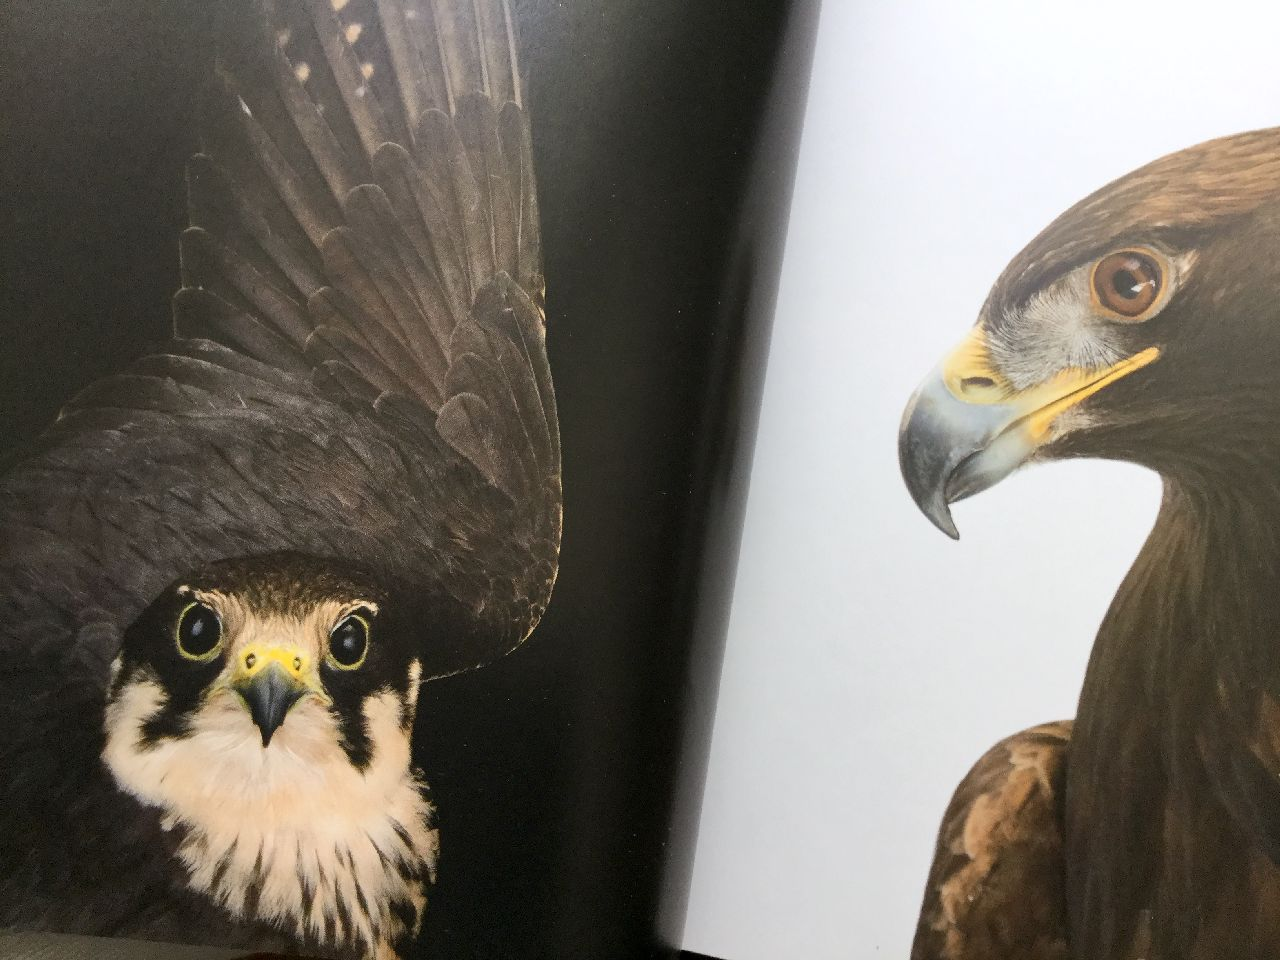 Joel Sartore, Photo Ark Uccelli, White Star